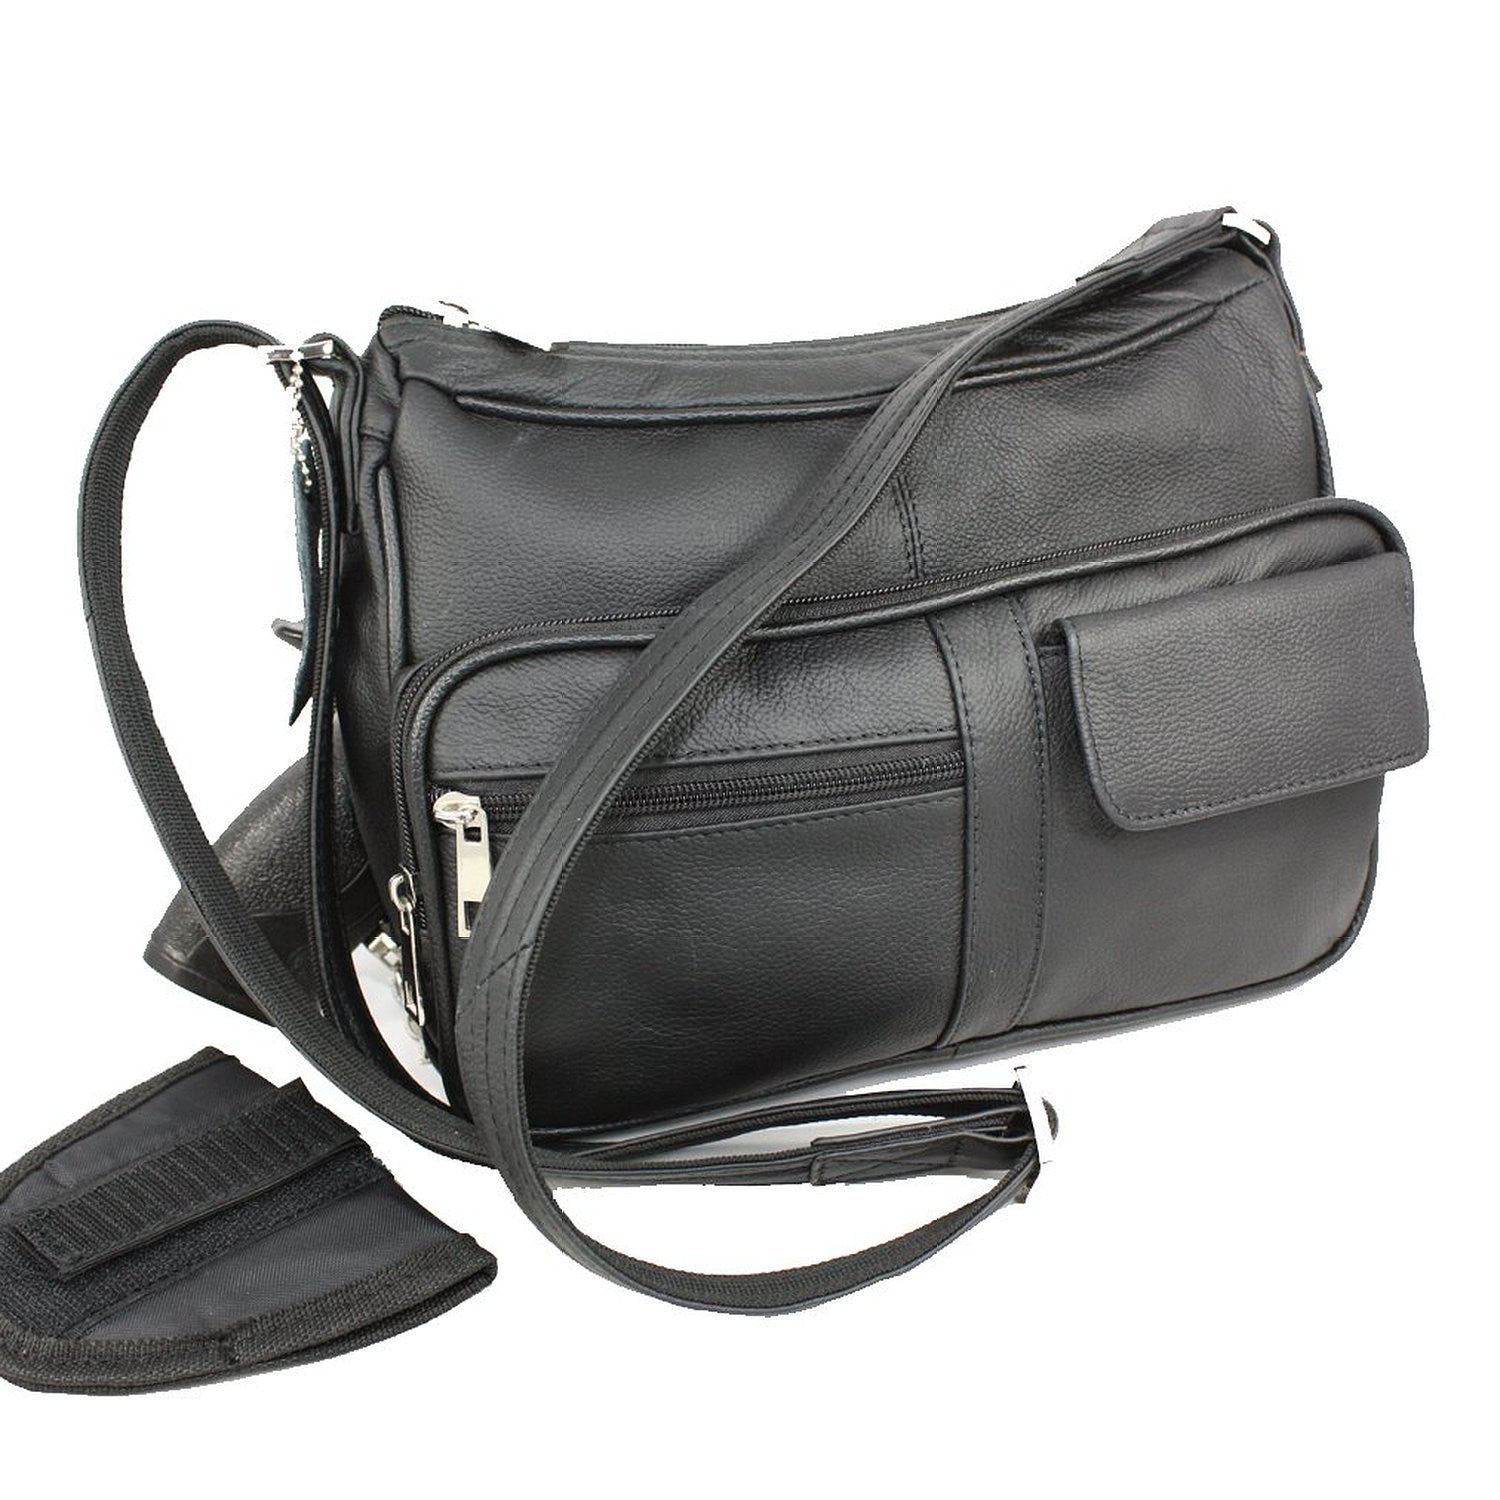 a9a0169f8e Contemporary Ladies Purse - UnderTech UnderCover